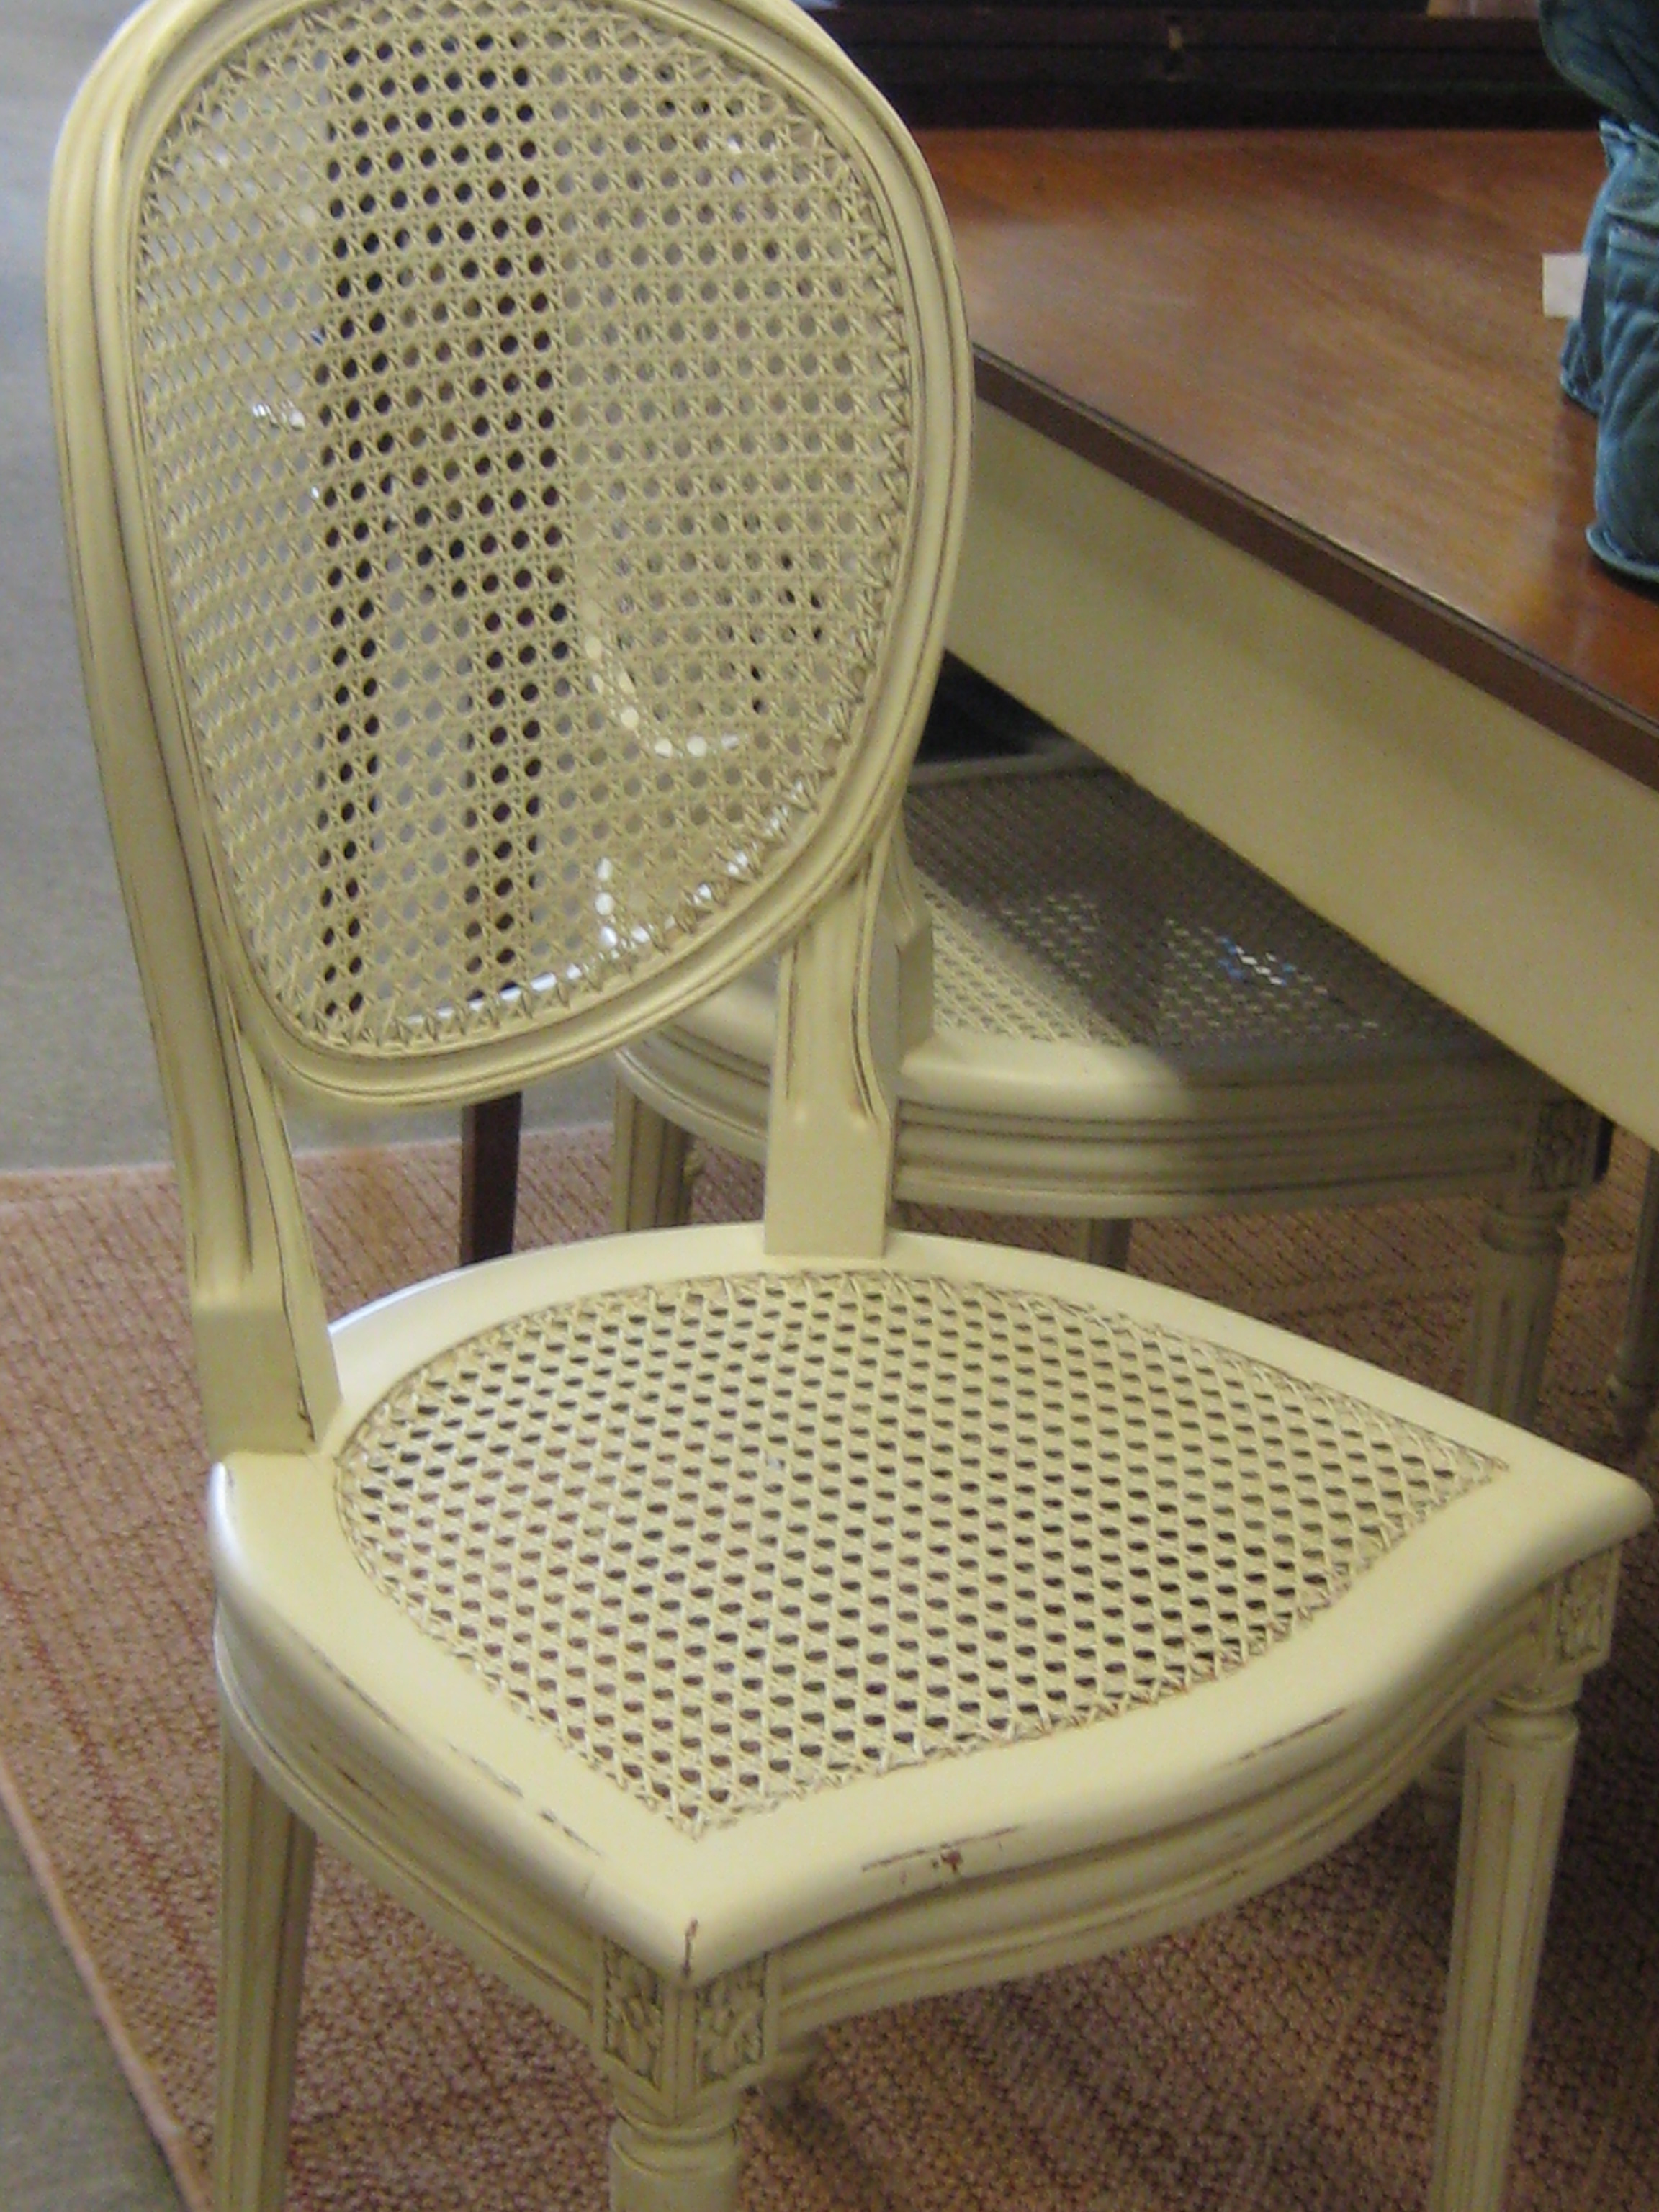 4 chairs and table with side draw at each end